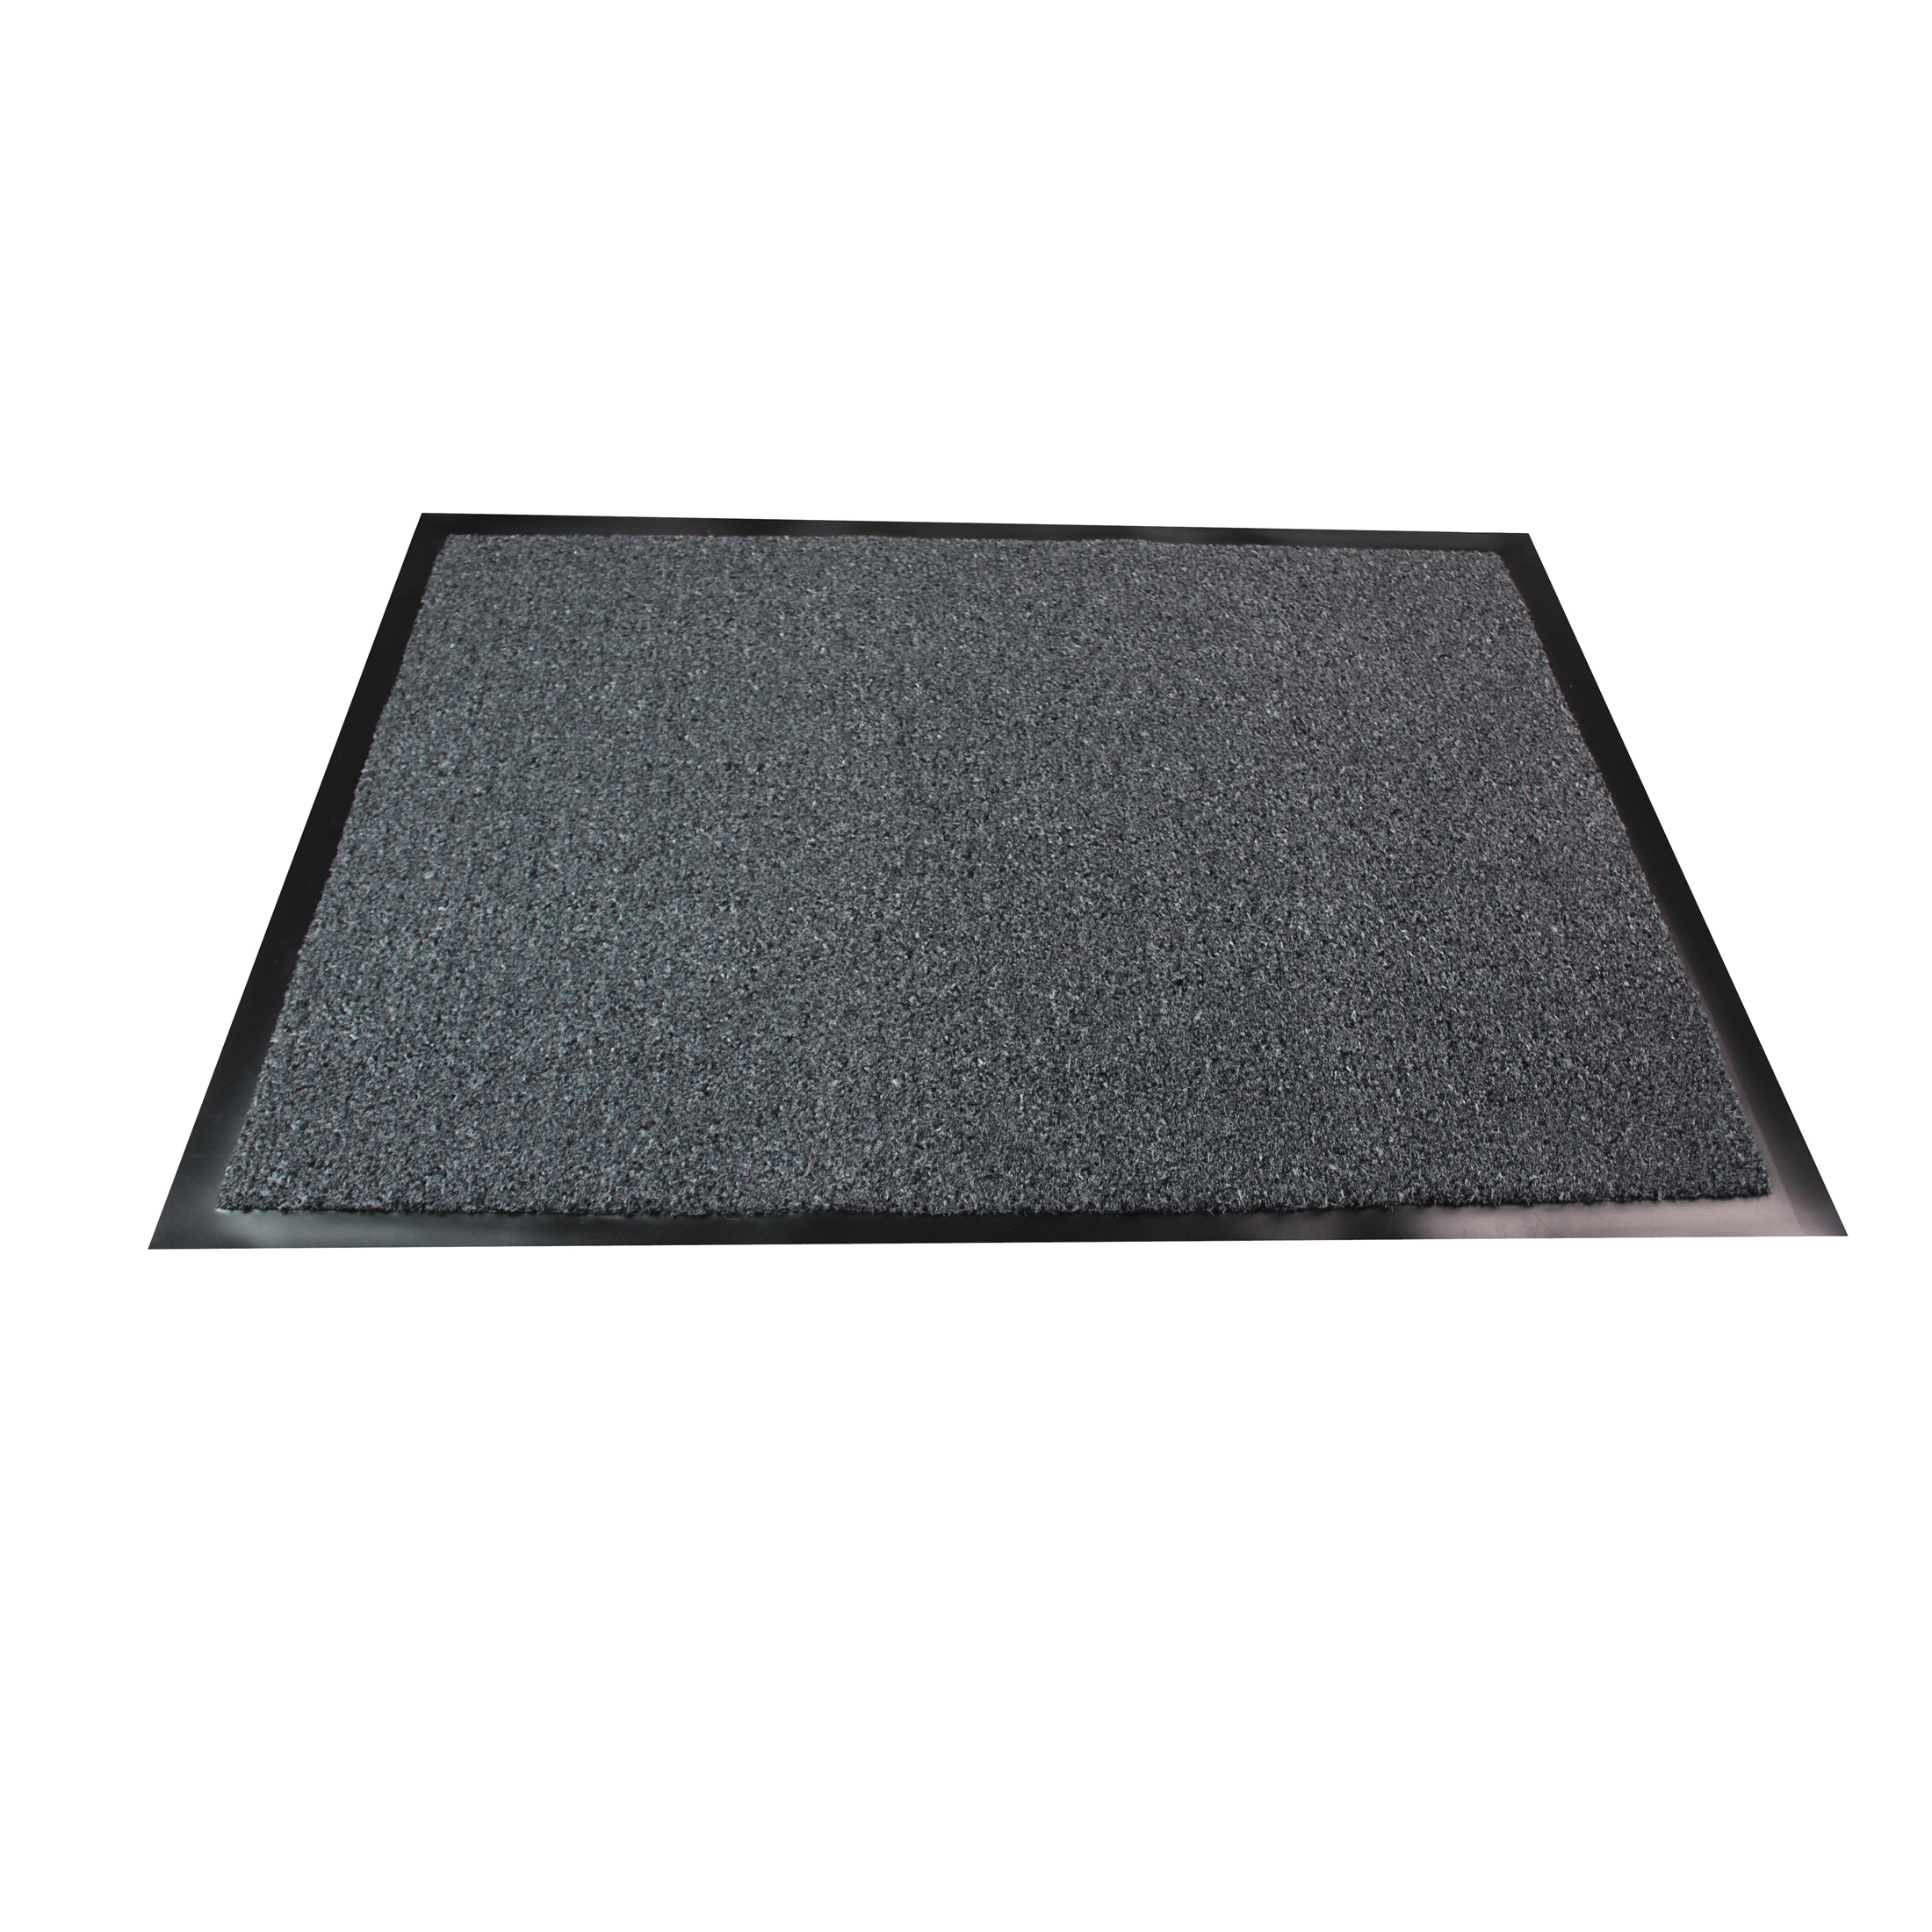 Indoor Doortex Valuemat Entrance Mat Indoor Use Hard Wearing 800x1200mm Grey Ref FC480120VALGR